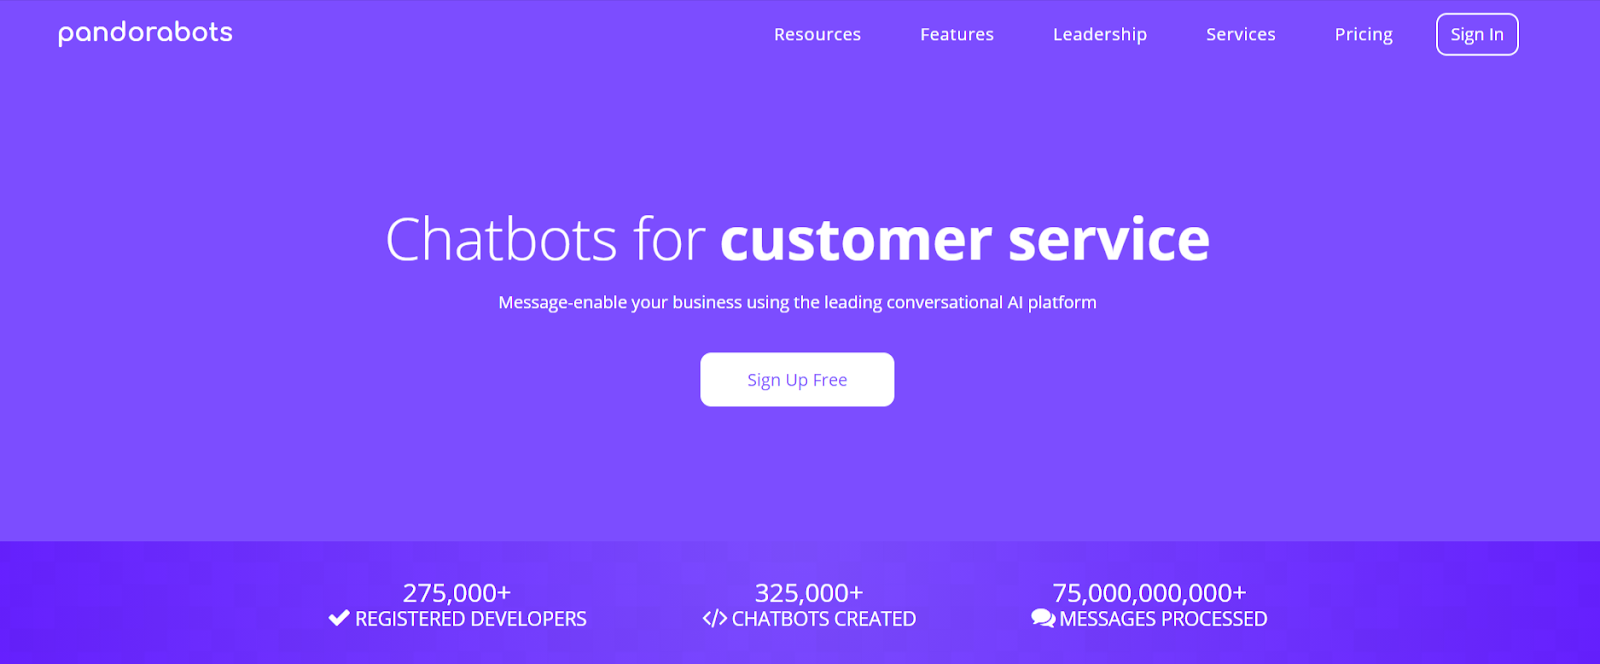 pandorabots Chatbot with speech to text capabilities